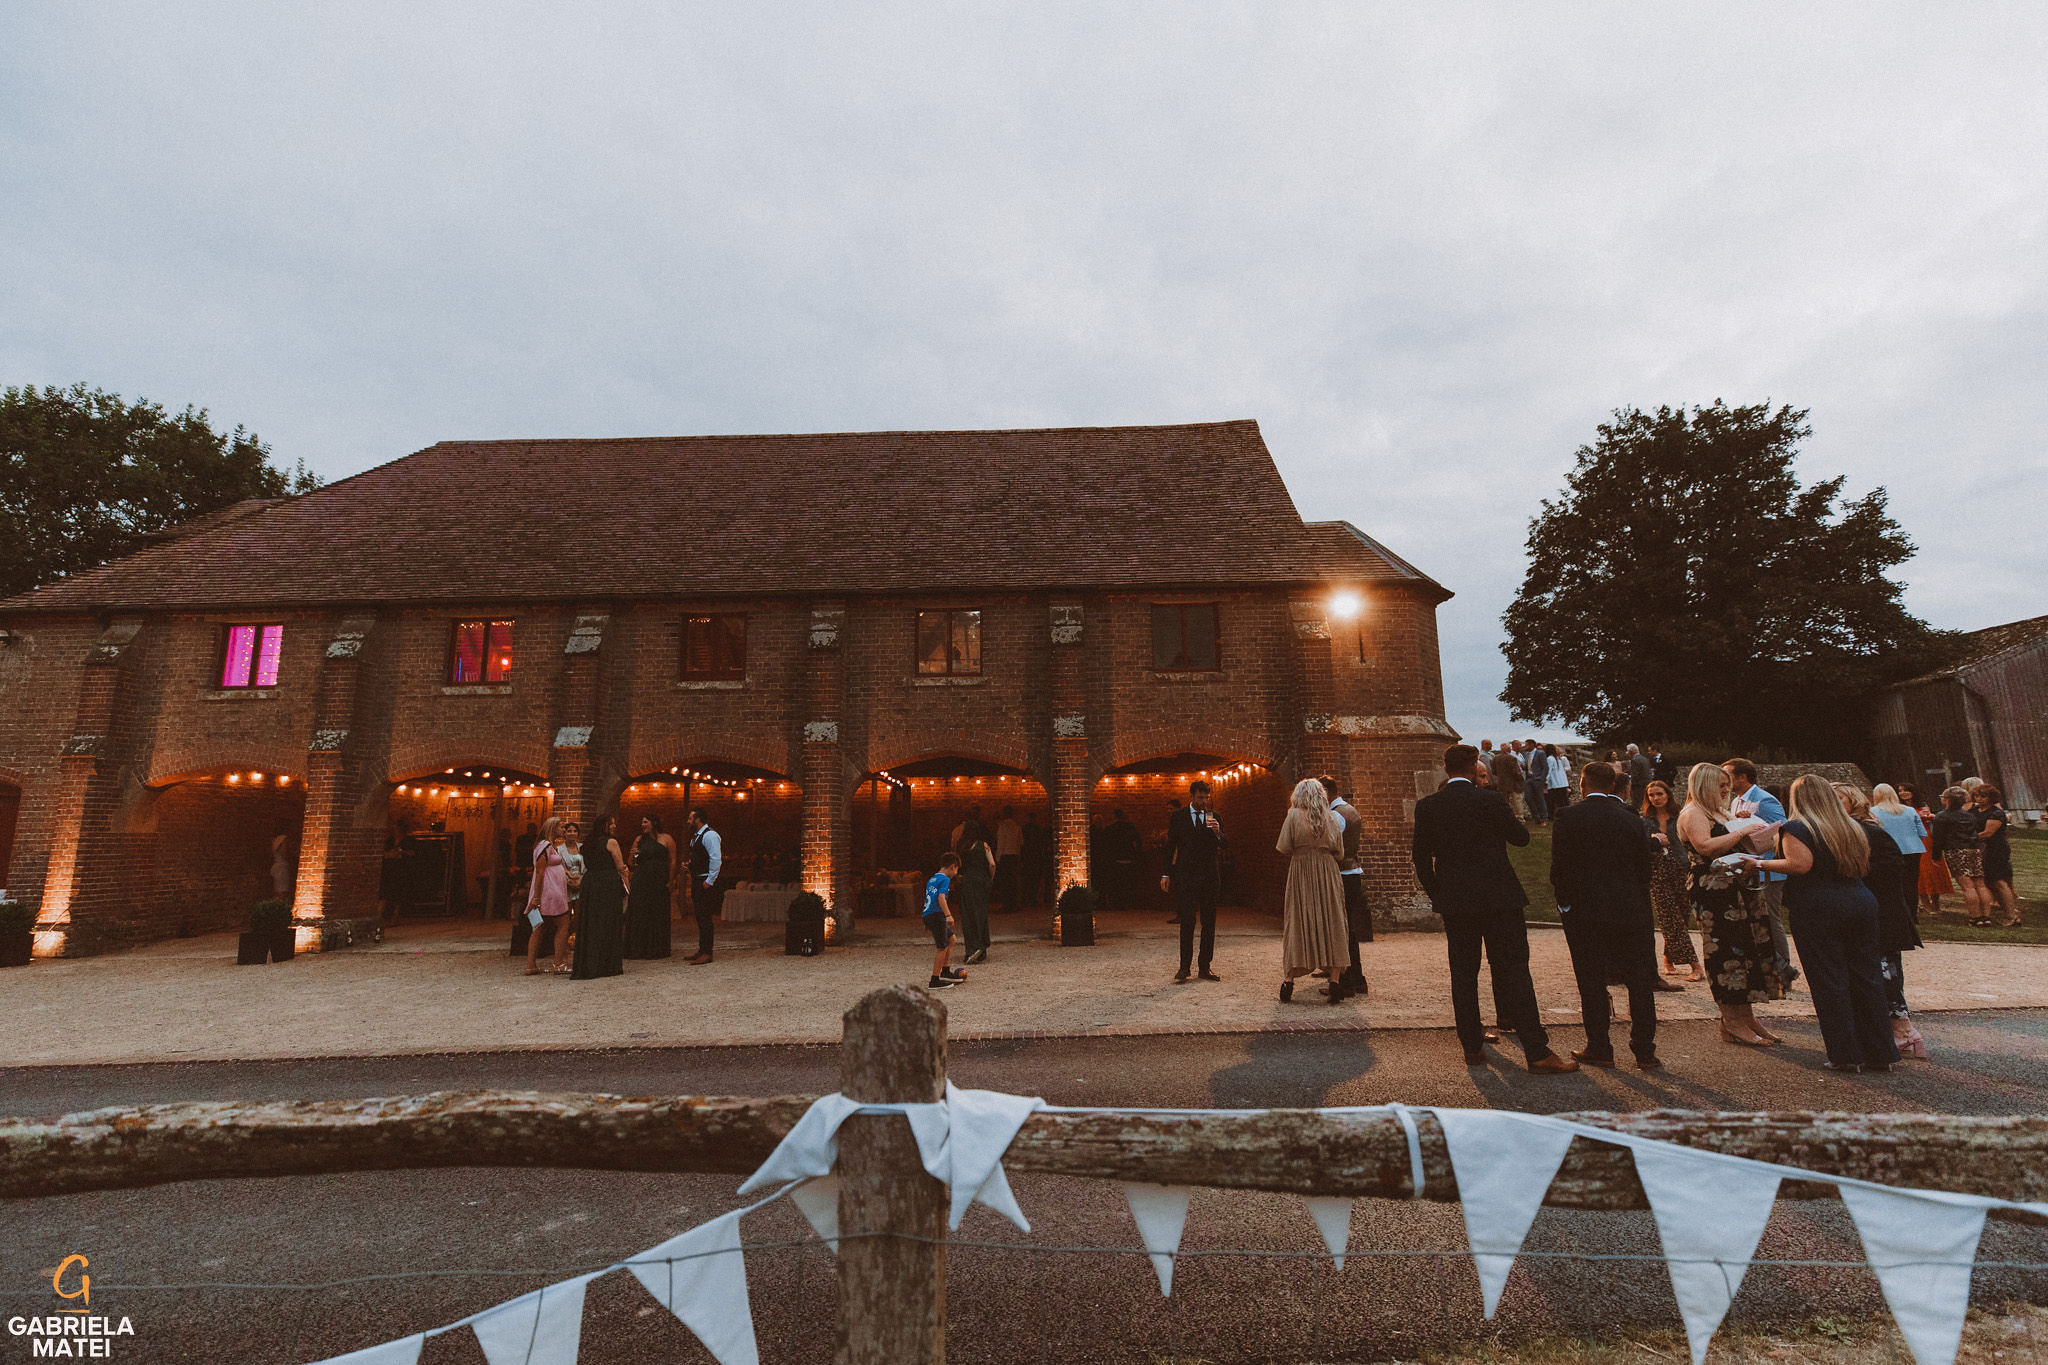 at South Stoke Barn wedding venue in Arundel by gabriela matei sussex photographer